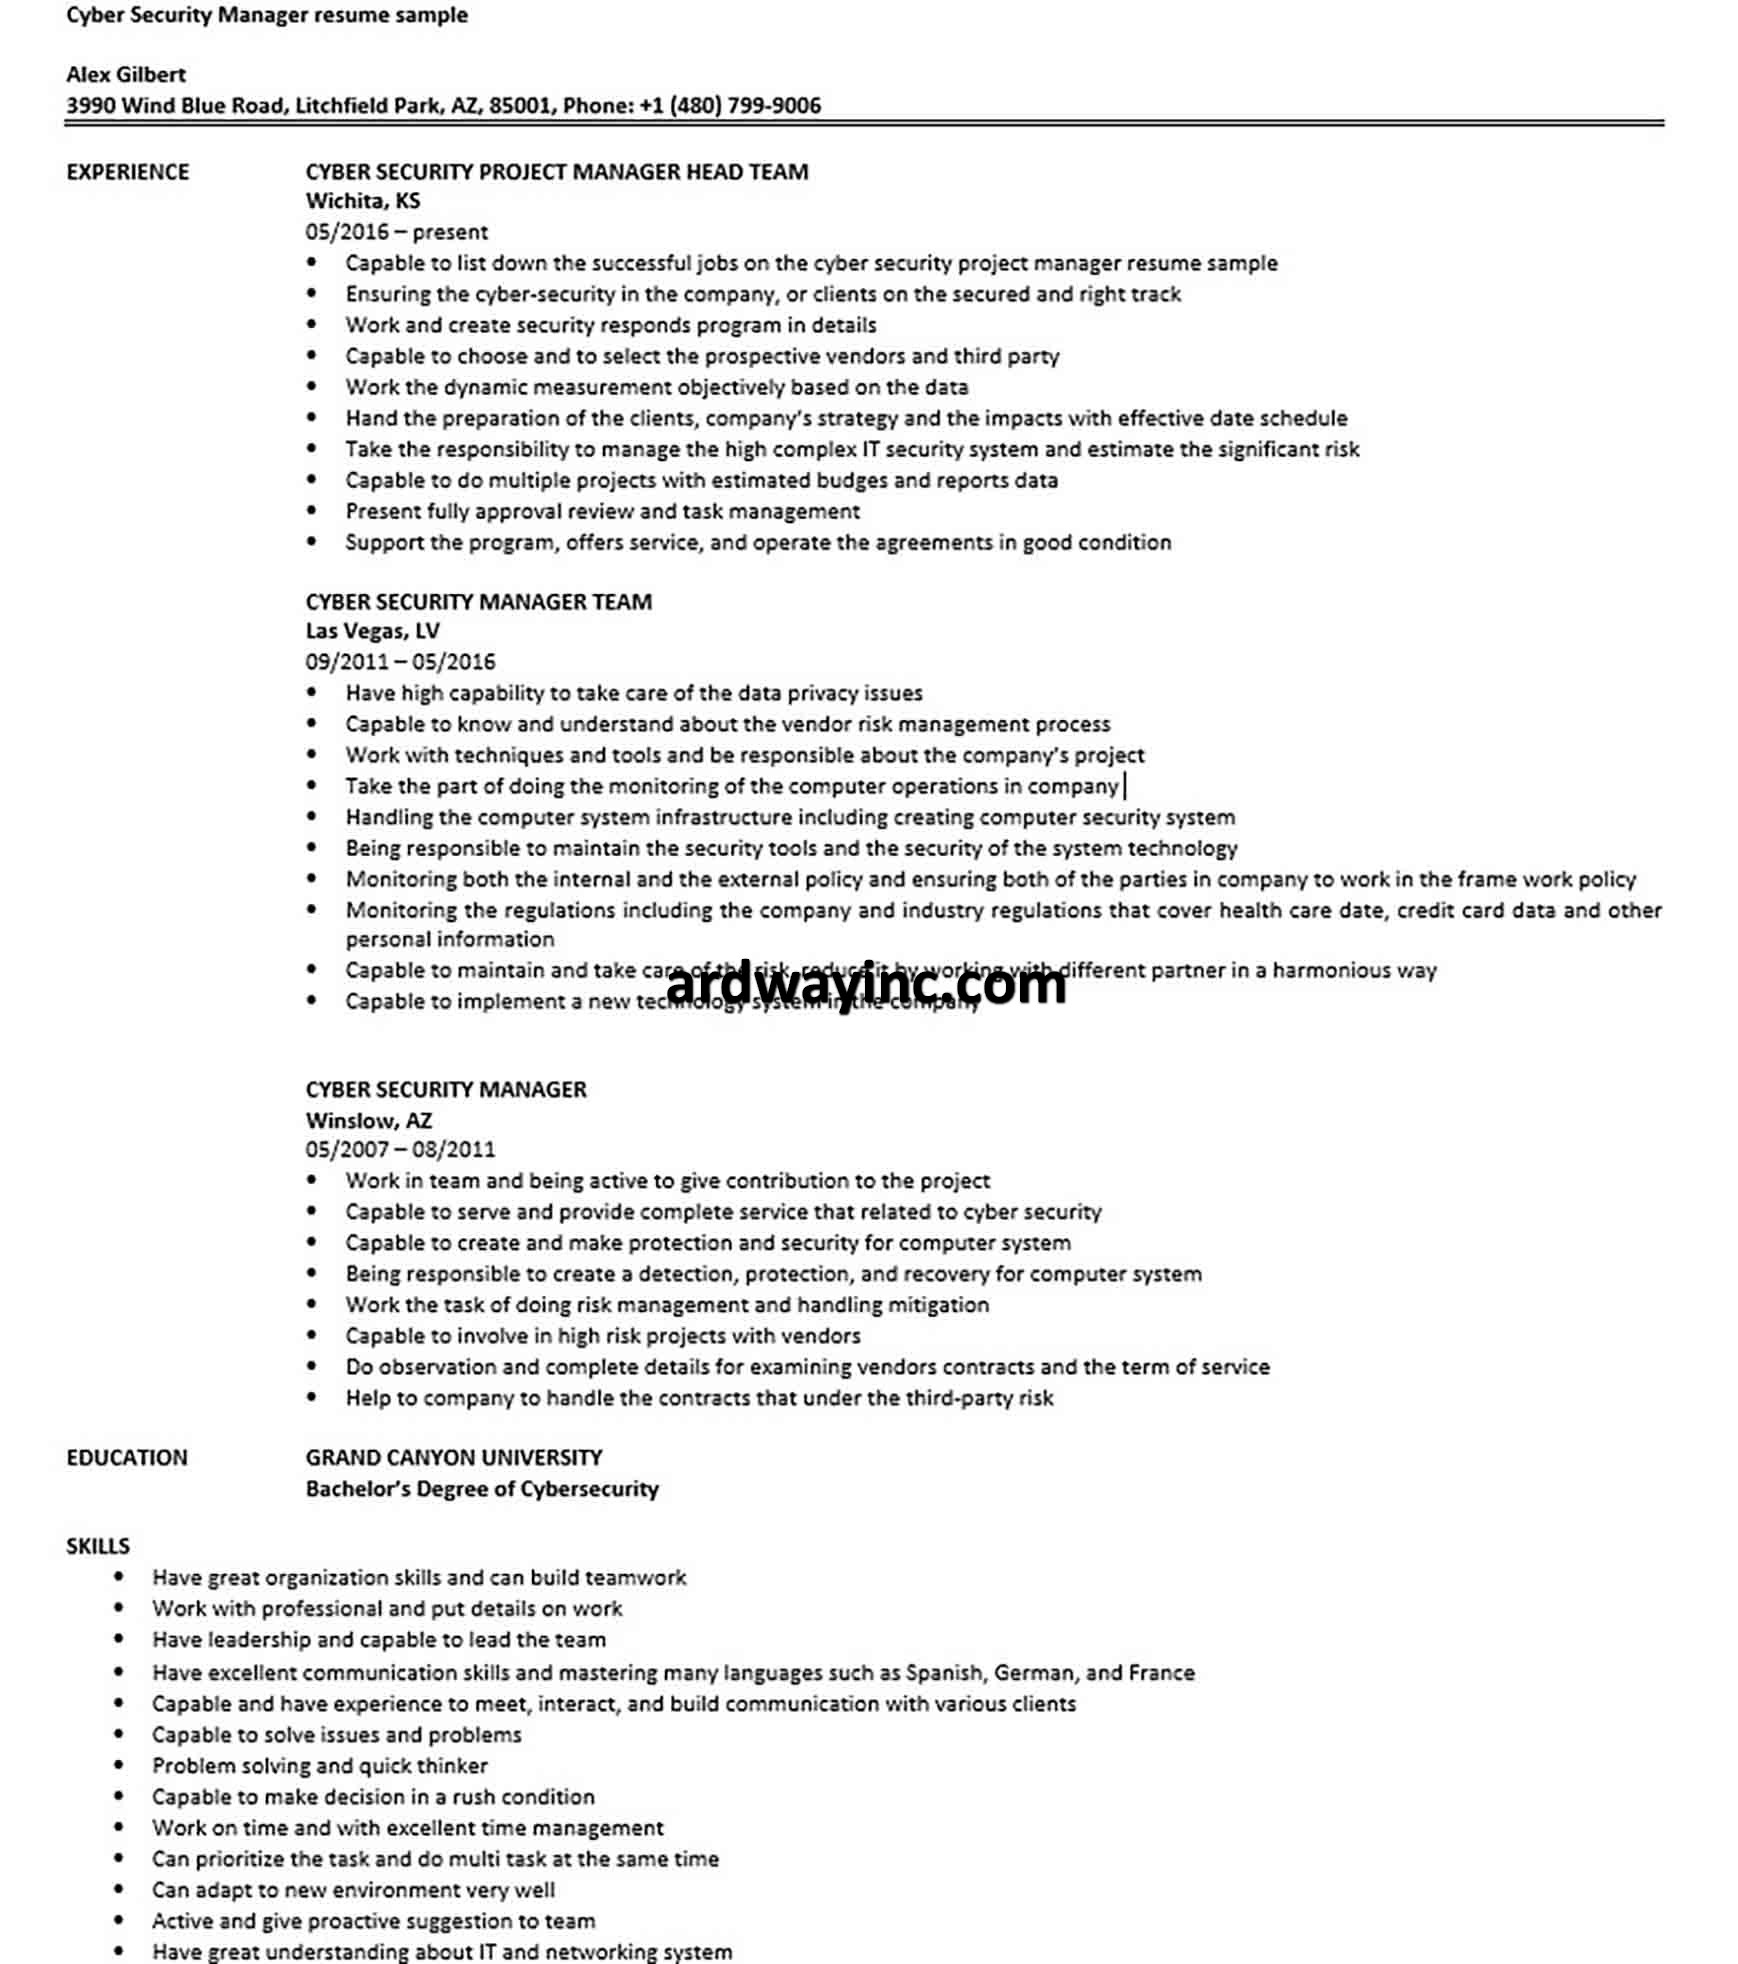 cyber security project manager resume sample